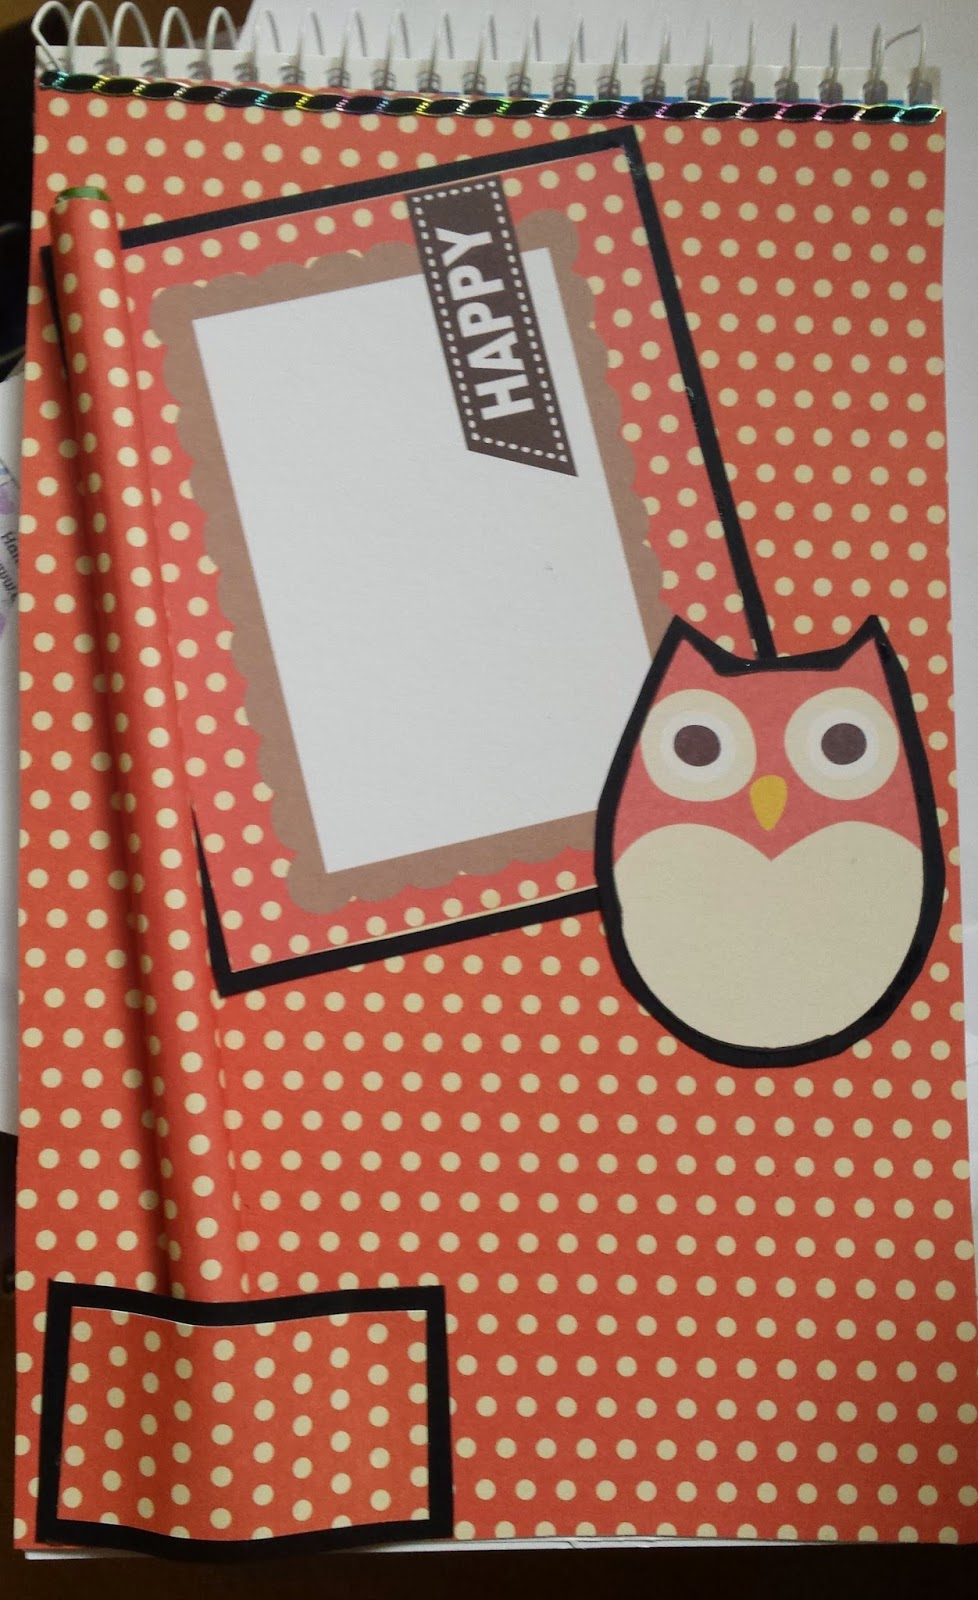 Owl shorthand notebook with pencil and A7 notebook